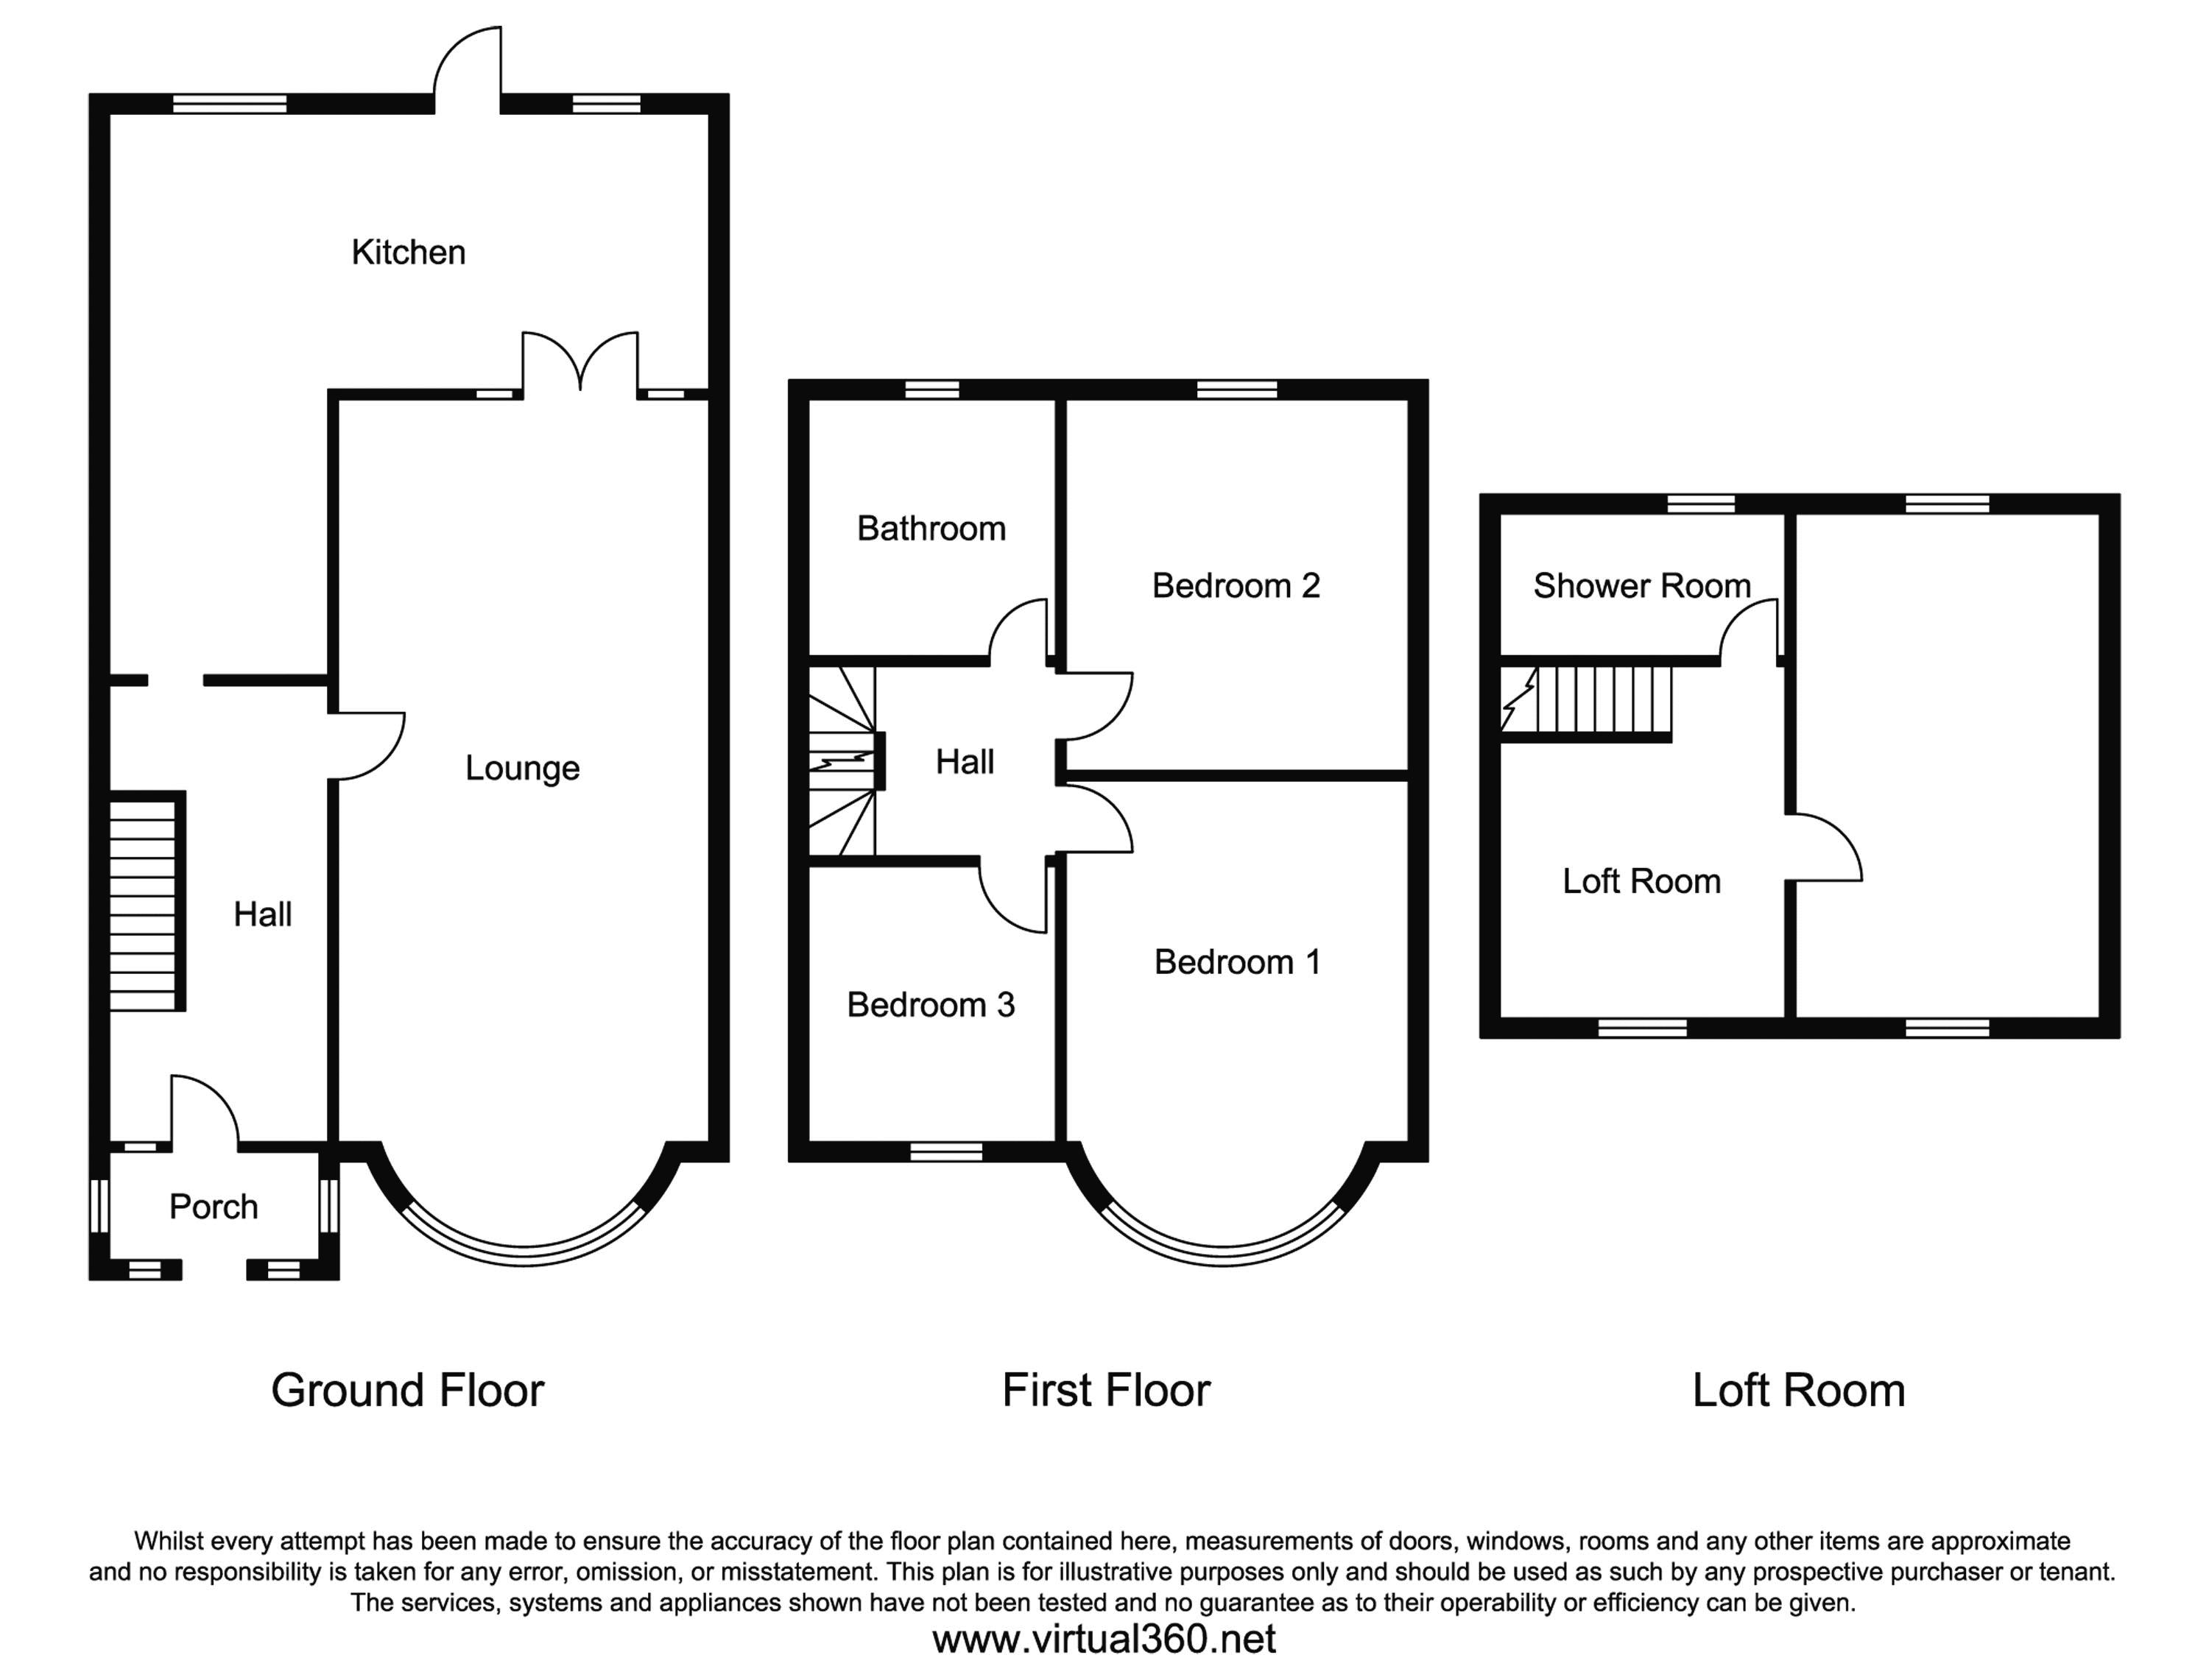 Beccles Drive, Barking floor plan